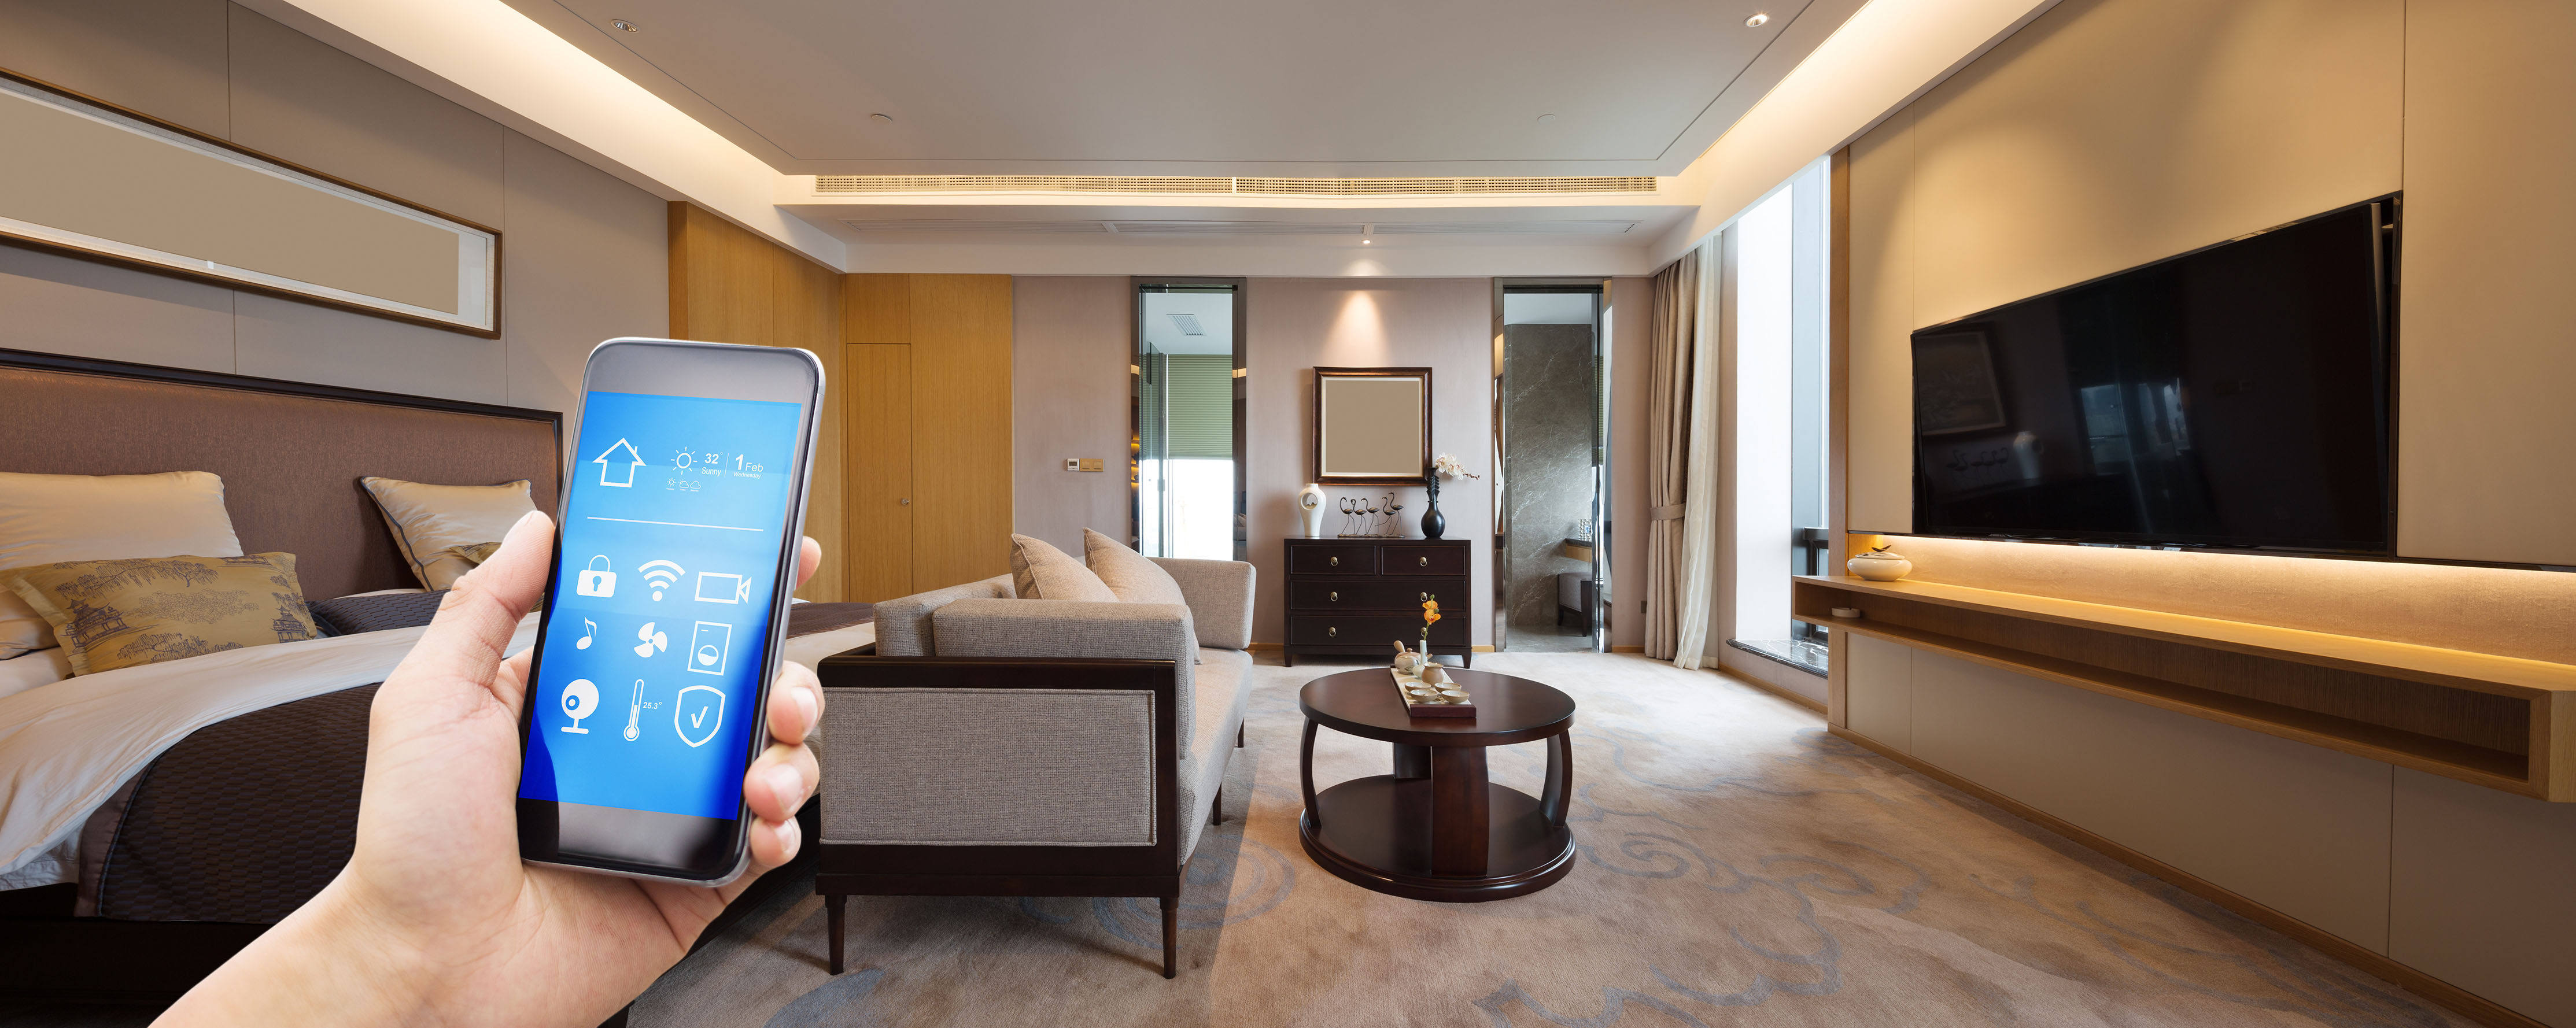 client holding phone in bedroom to control smart home features installed by smart home installation company